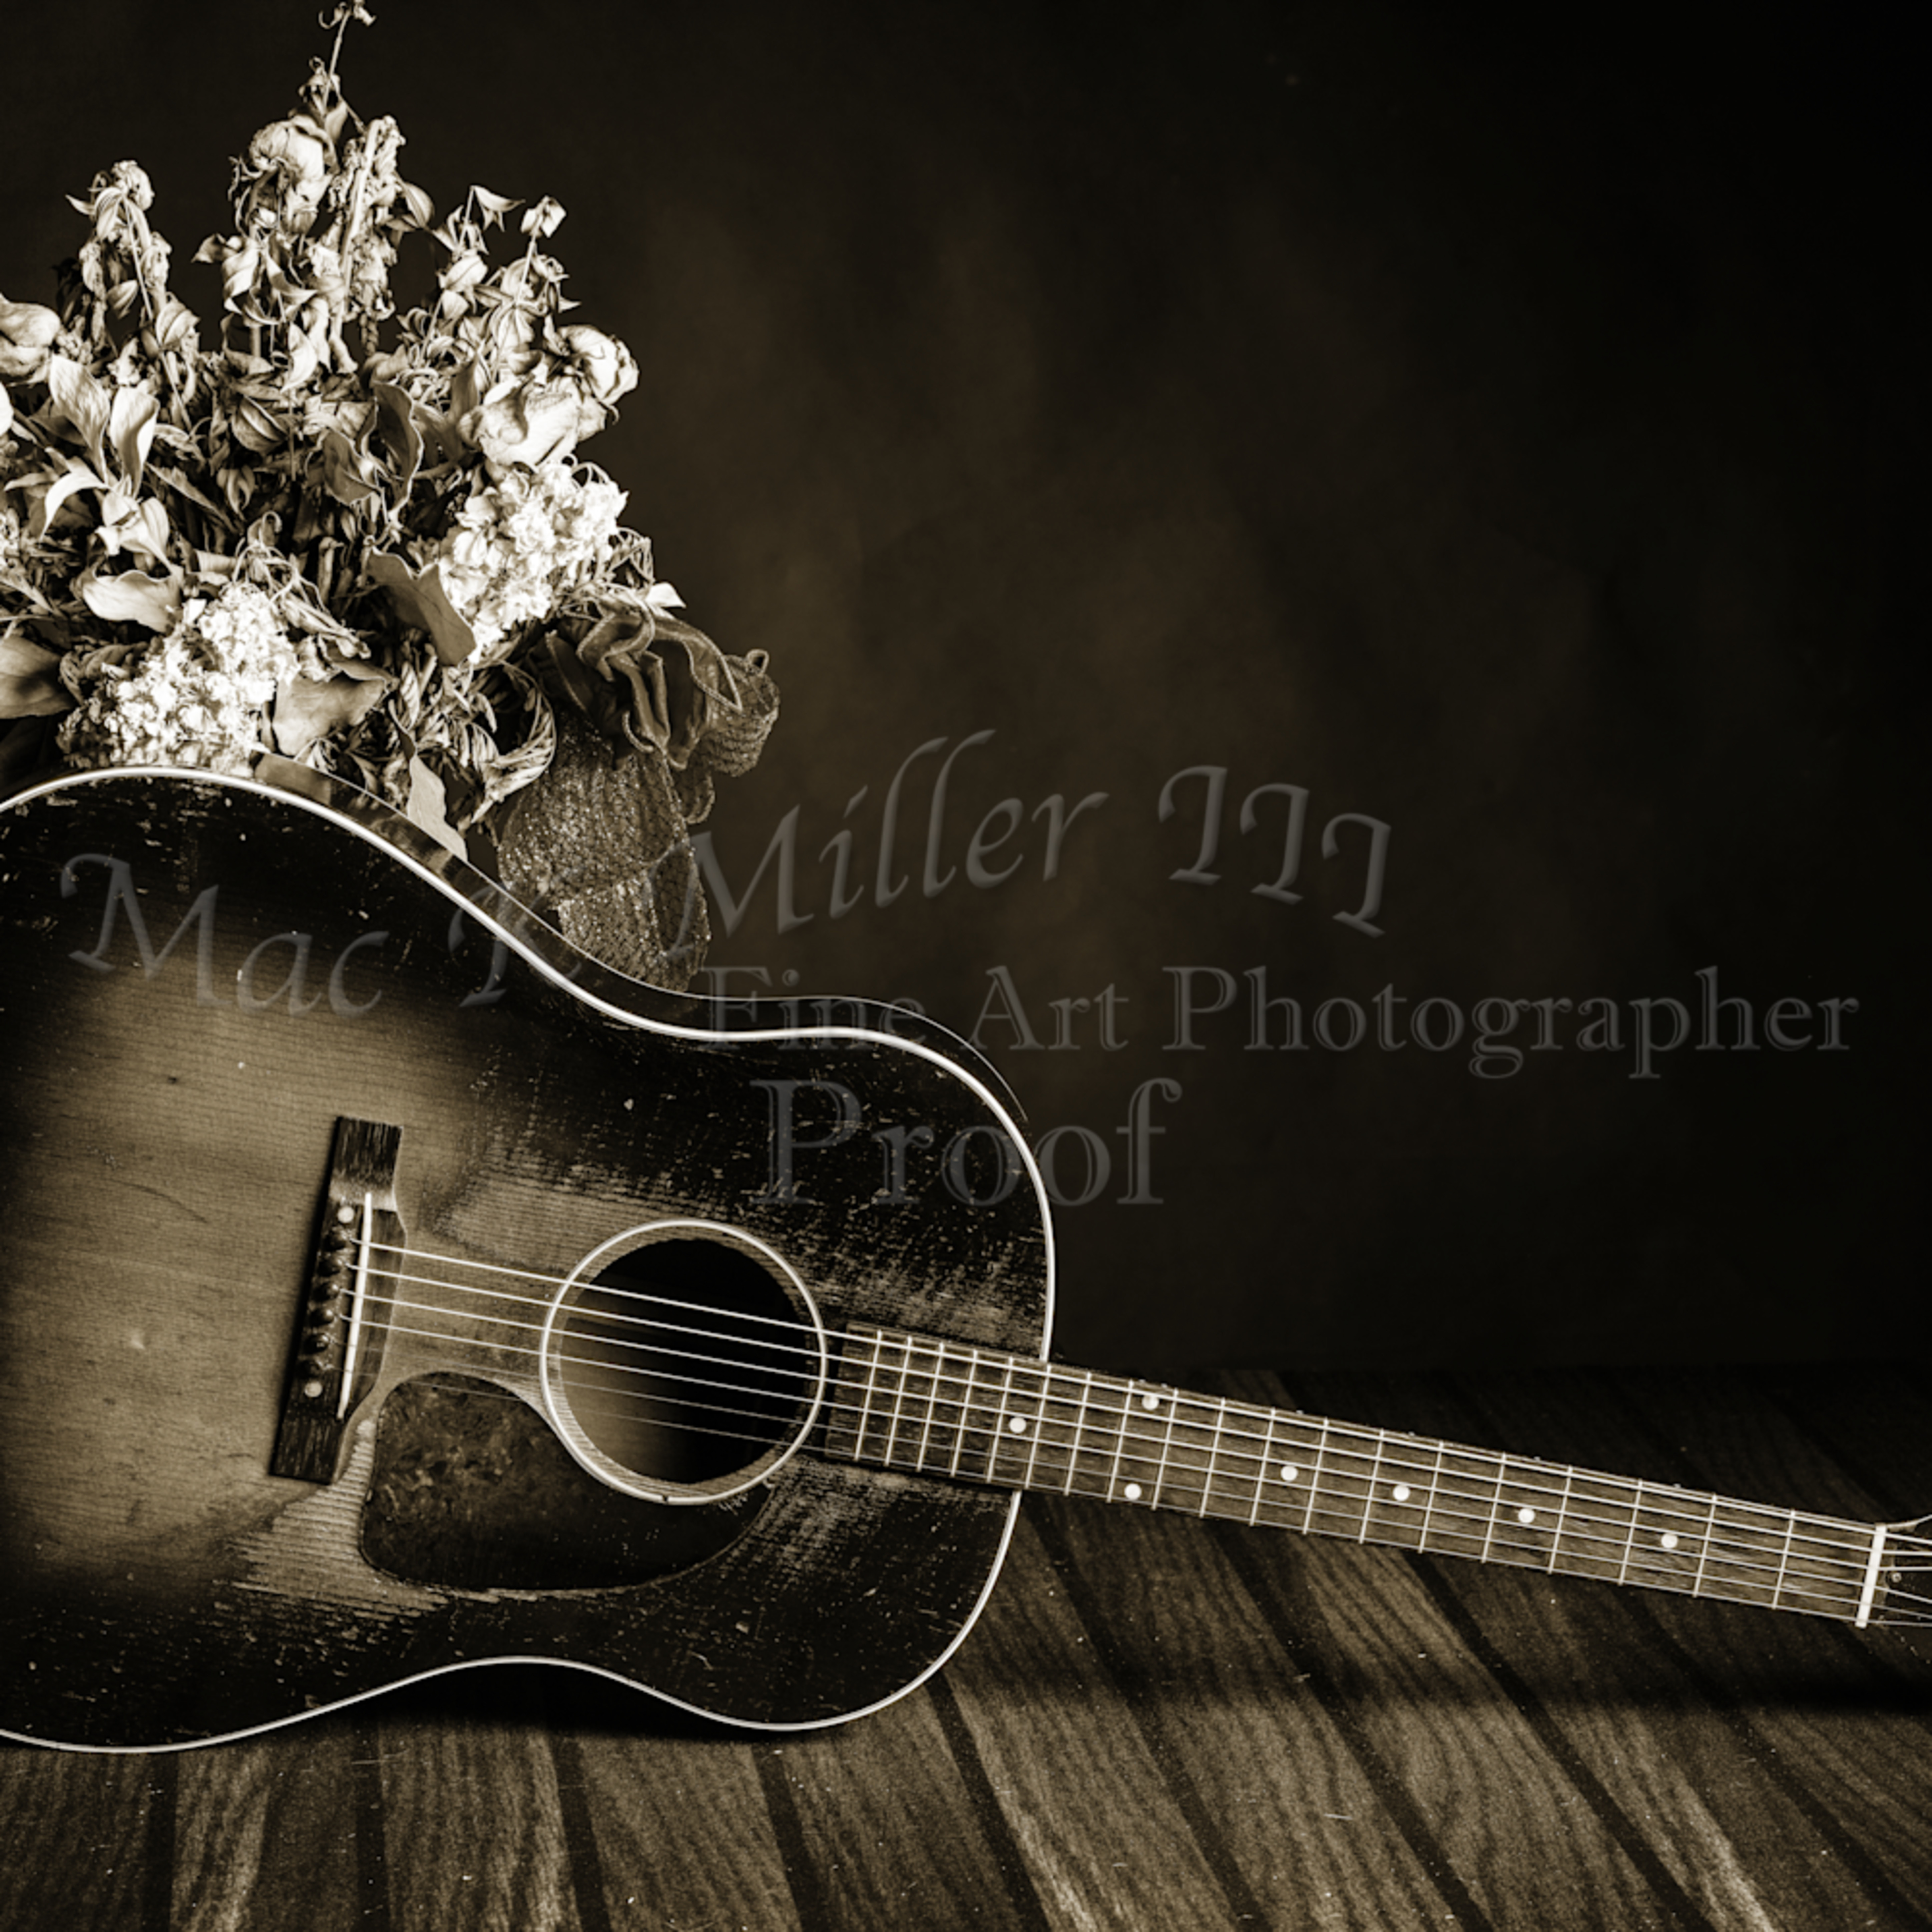 461.1834 gibson j45 in black and white yxceta